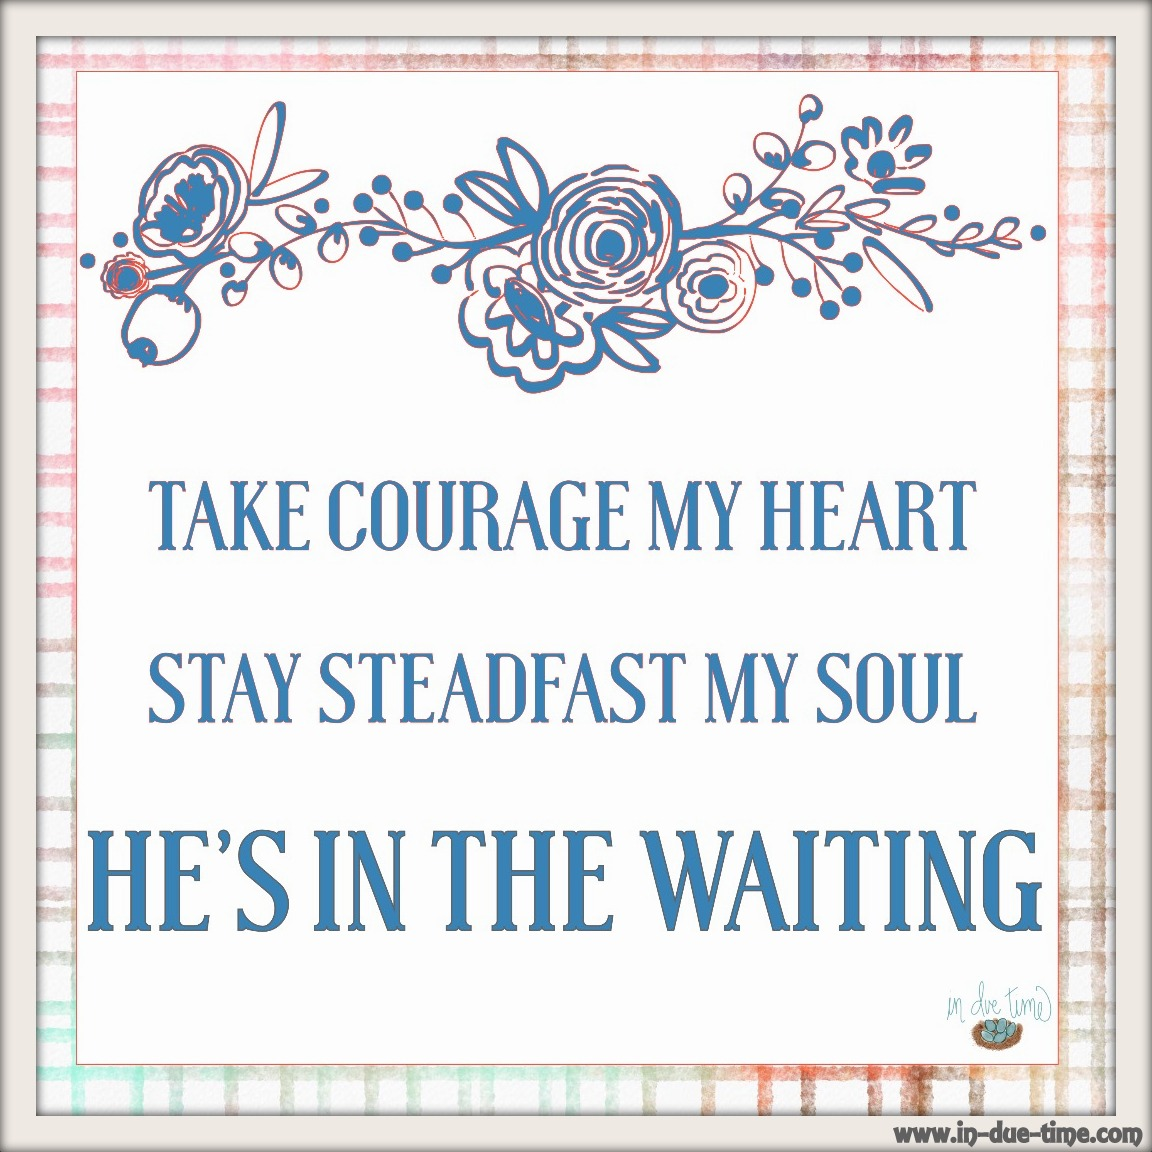 Take Courage - He is in the Wait- Bethel - In Due Time Blog